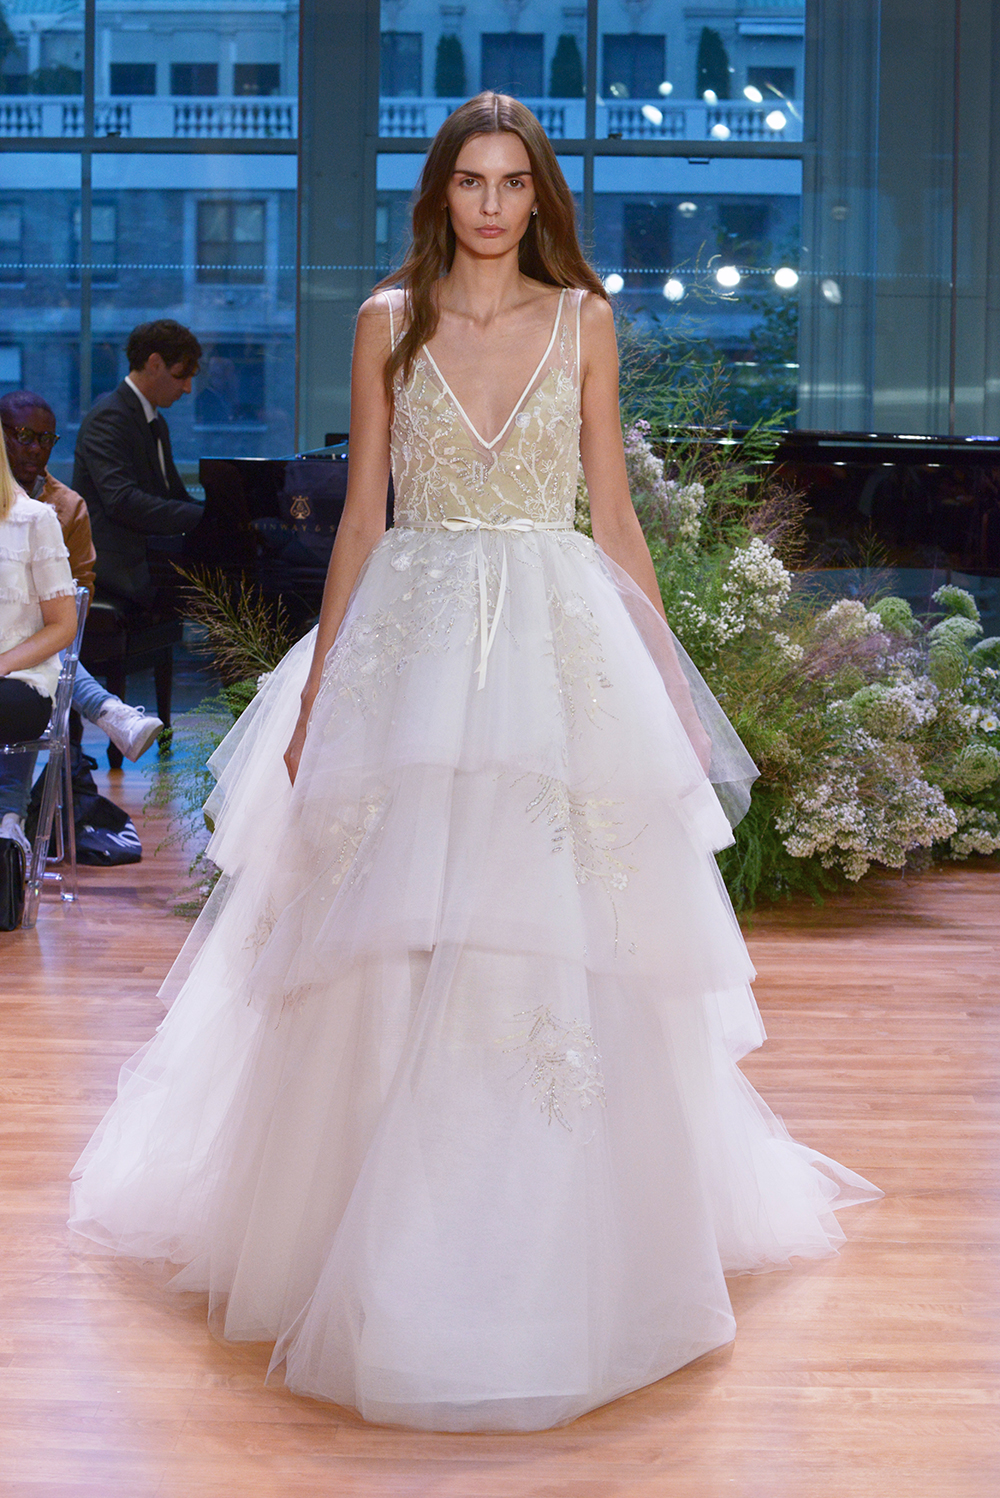 Carnegie - Monique Lhuillier Fall 2017 Bridal Collection. www.theweddingnotebook.com